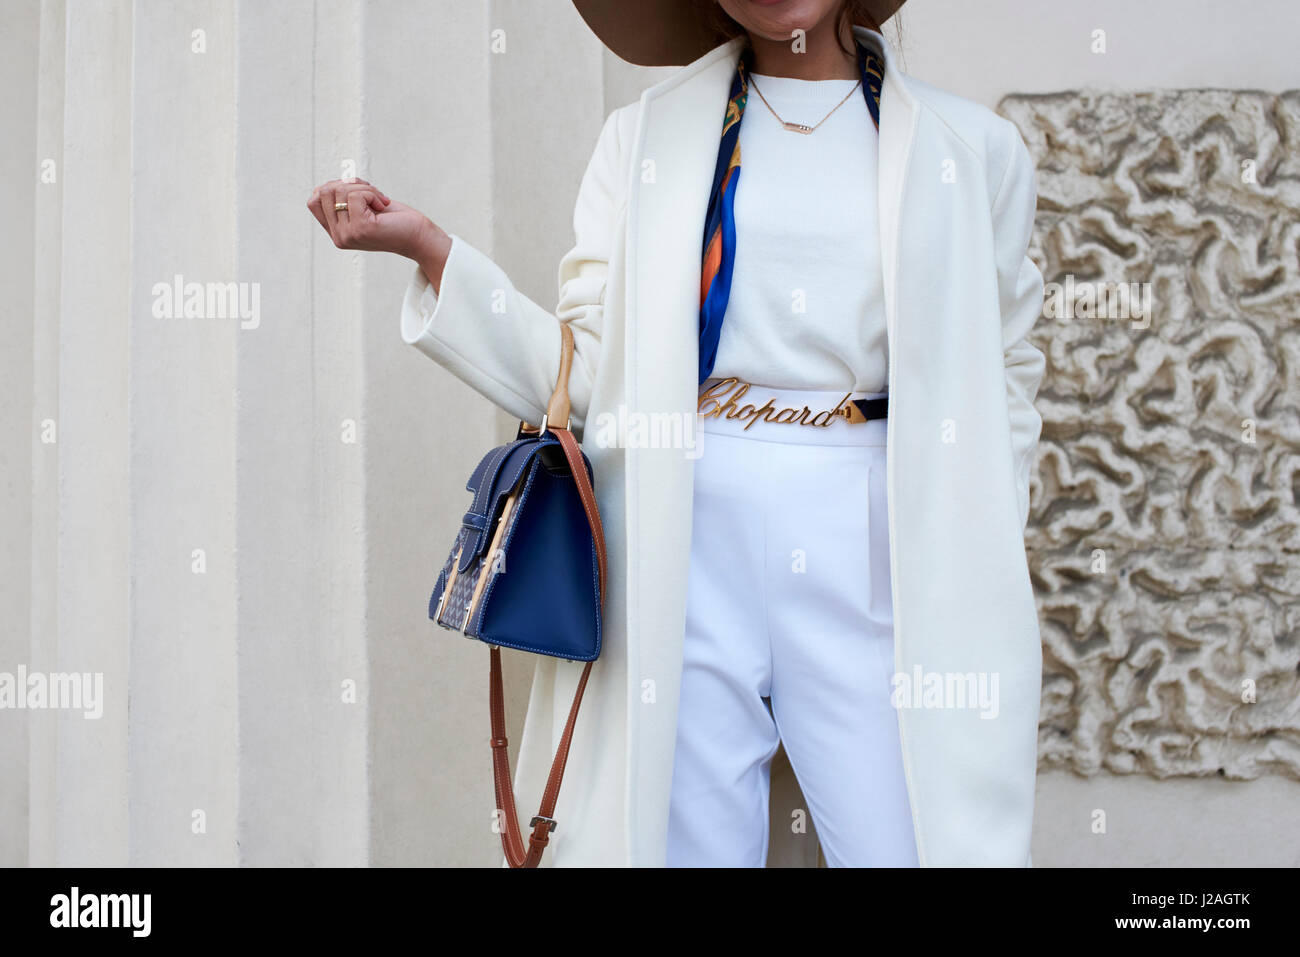 LONDON - FEBRUARY, 2017: Mid section of woman wearing white trousers, coat and metal Chopard belt holding a blue - Stock Image